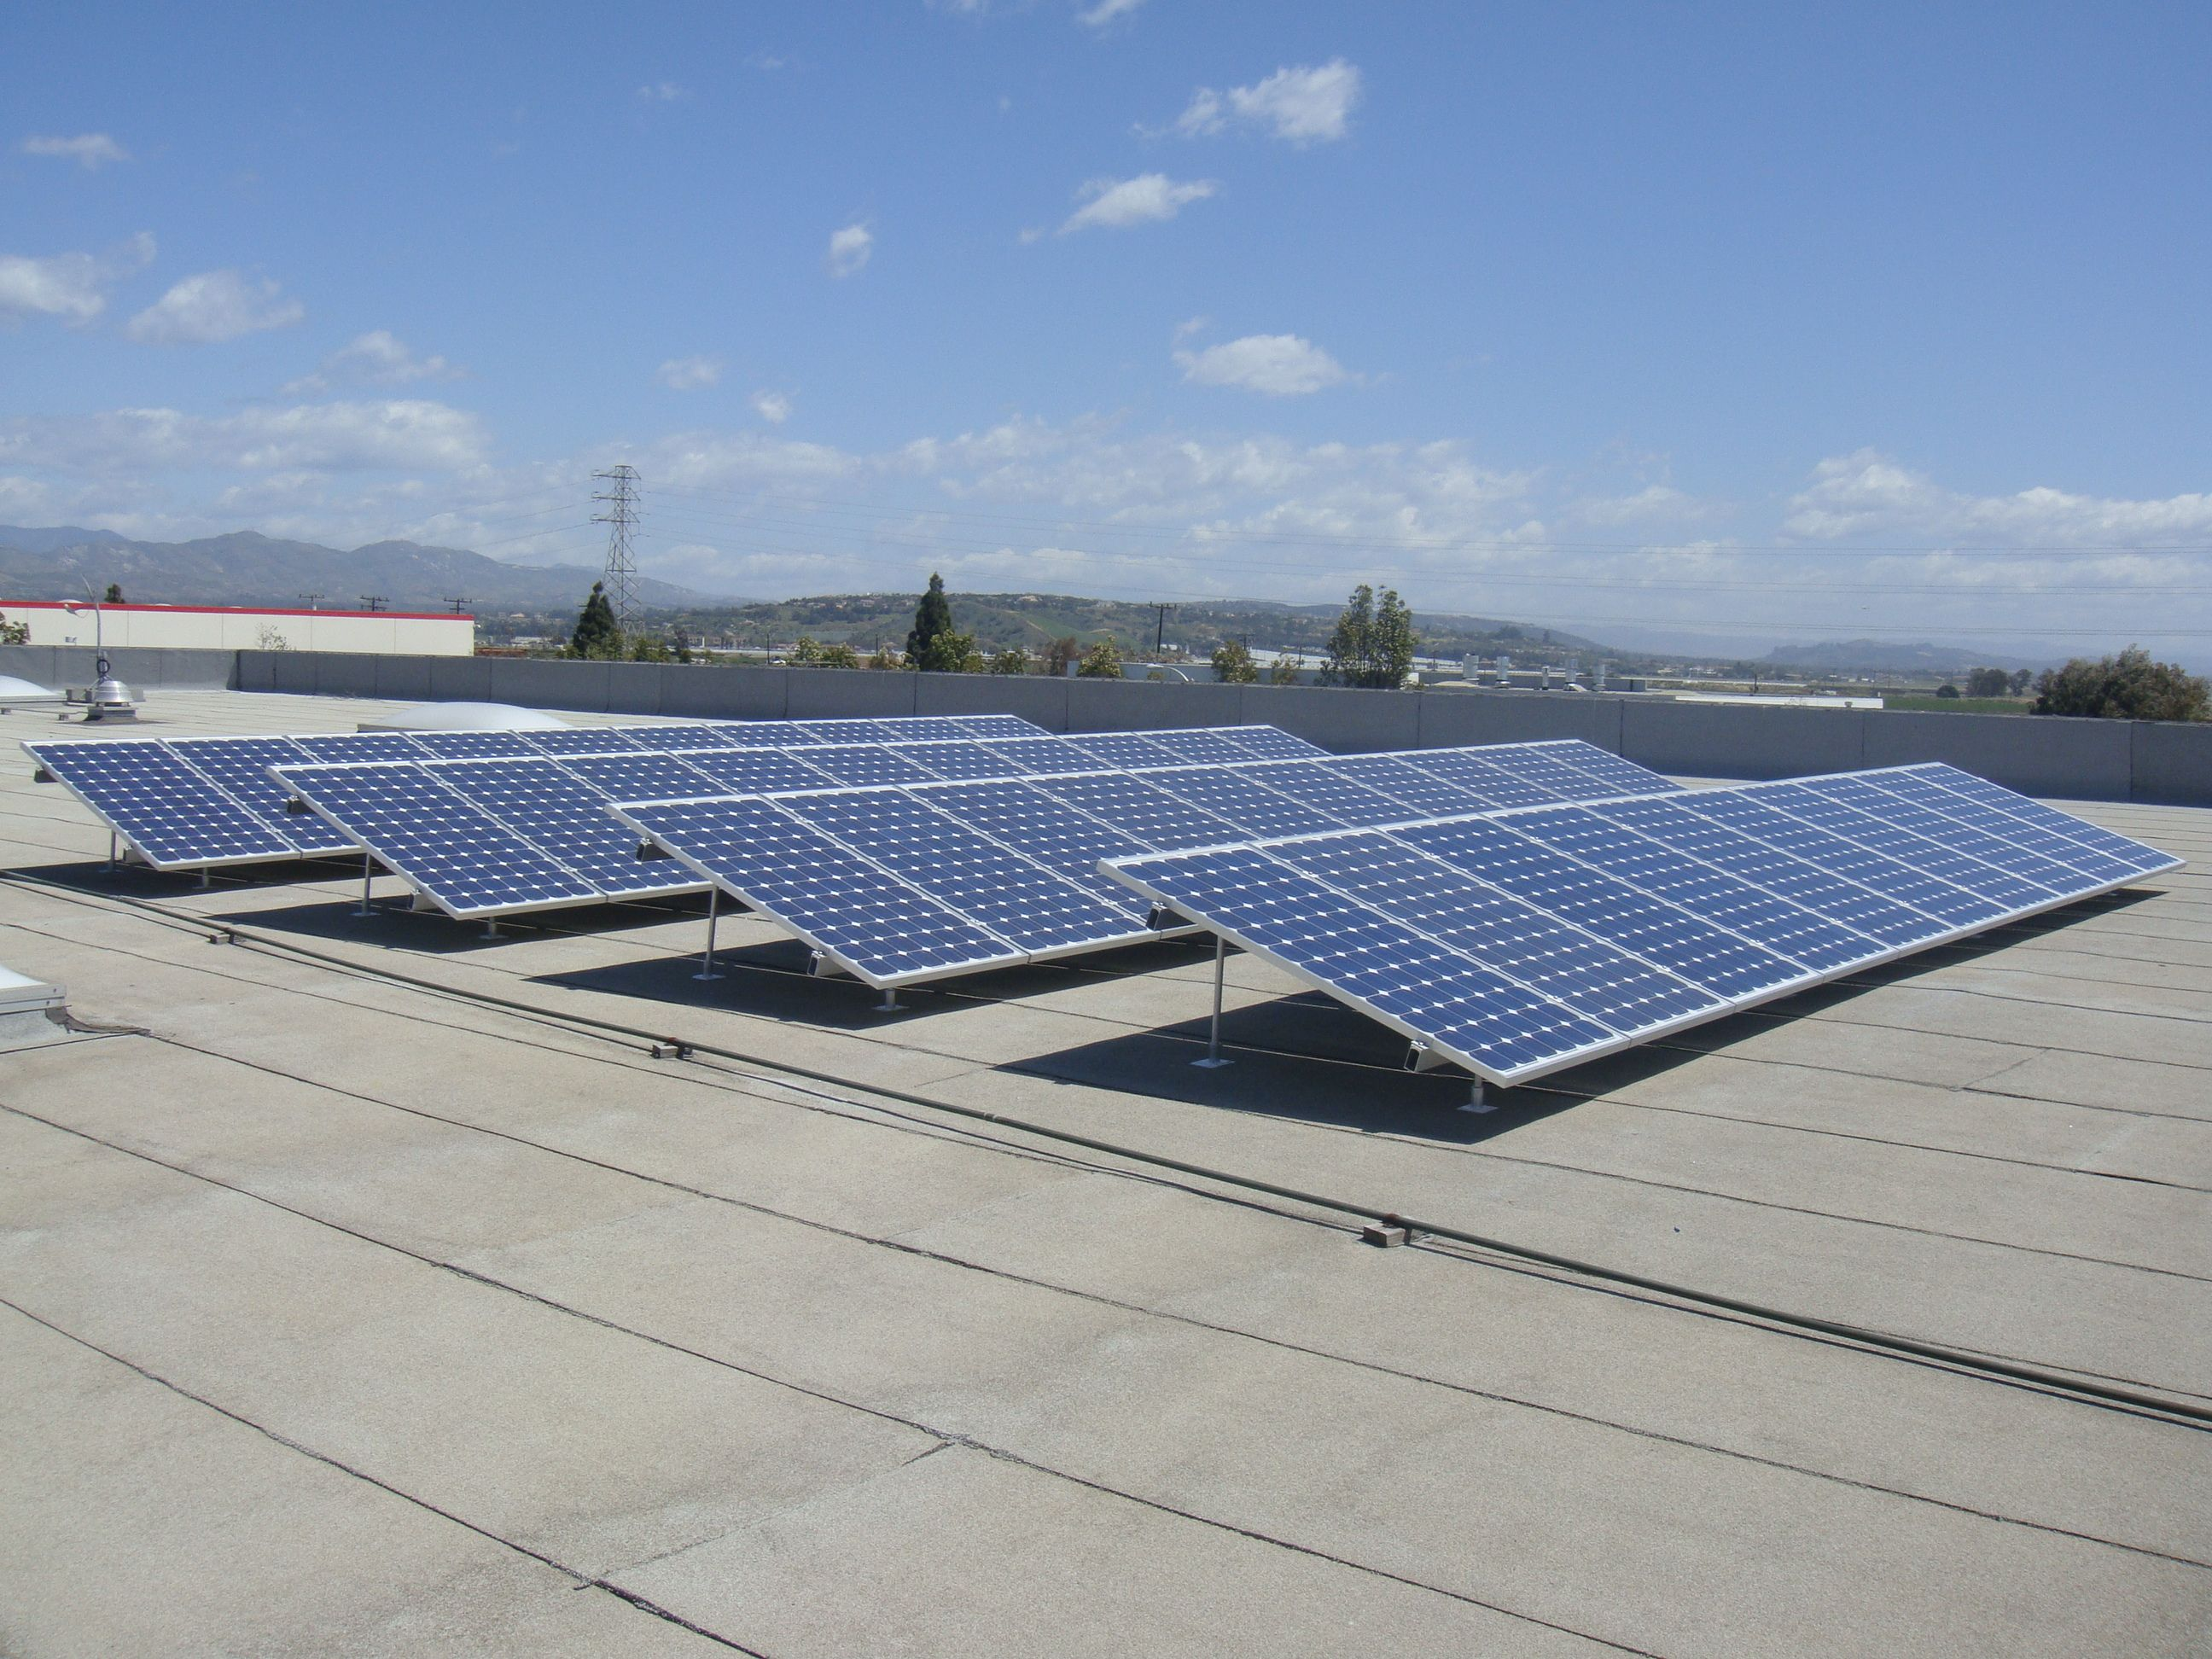 New Law Requires Solar Panels Or Plants On All Commercial Buildings Solar Panels Solar Roof Solar Panel